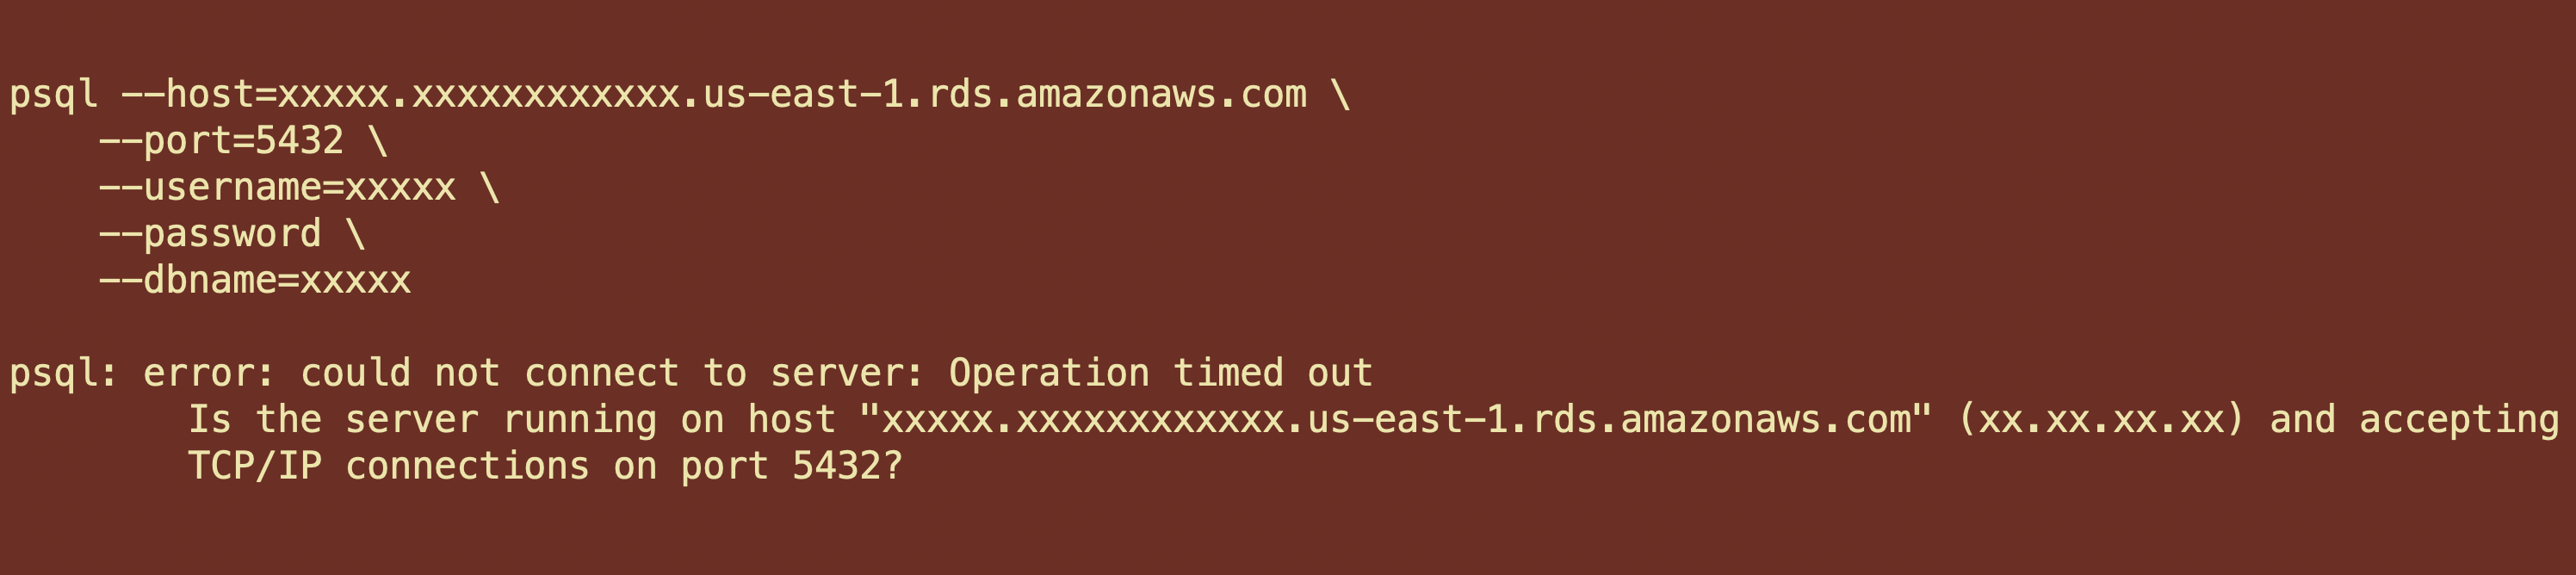 """Terminal psql TCP/IP connection attempt that failed with """"Operation timed out"""""""